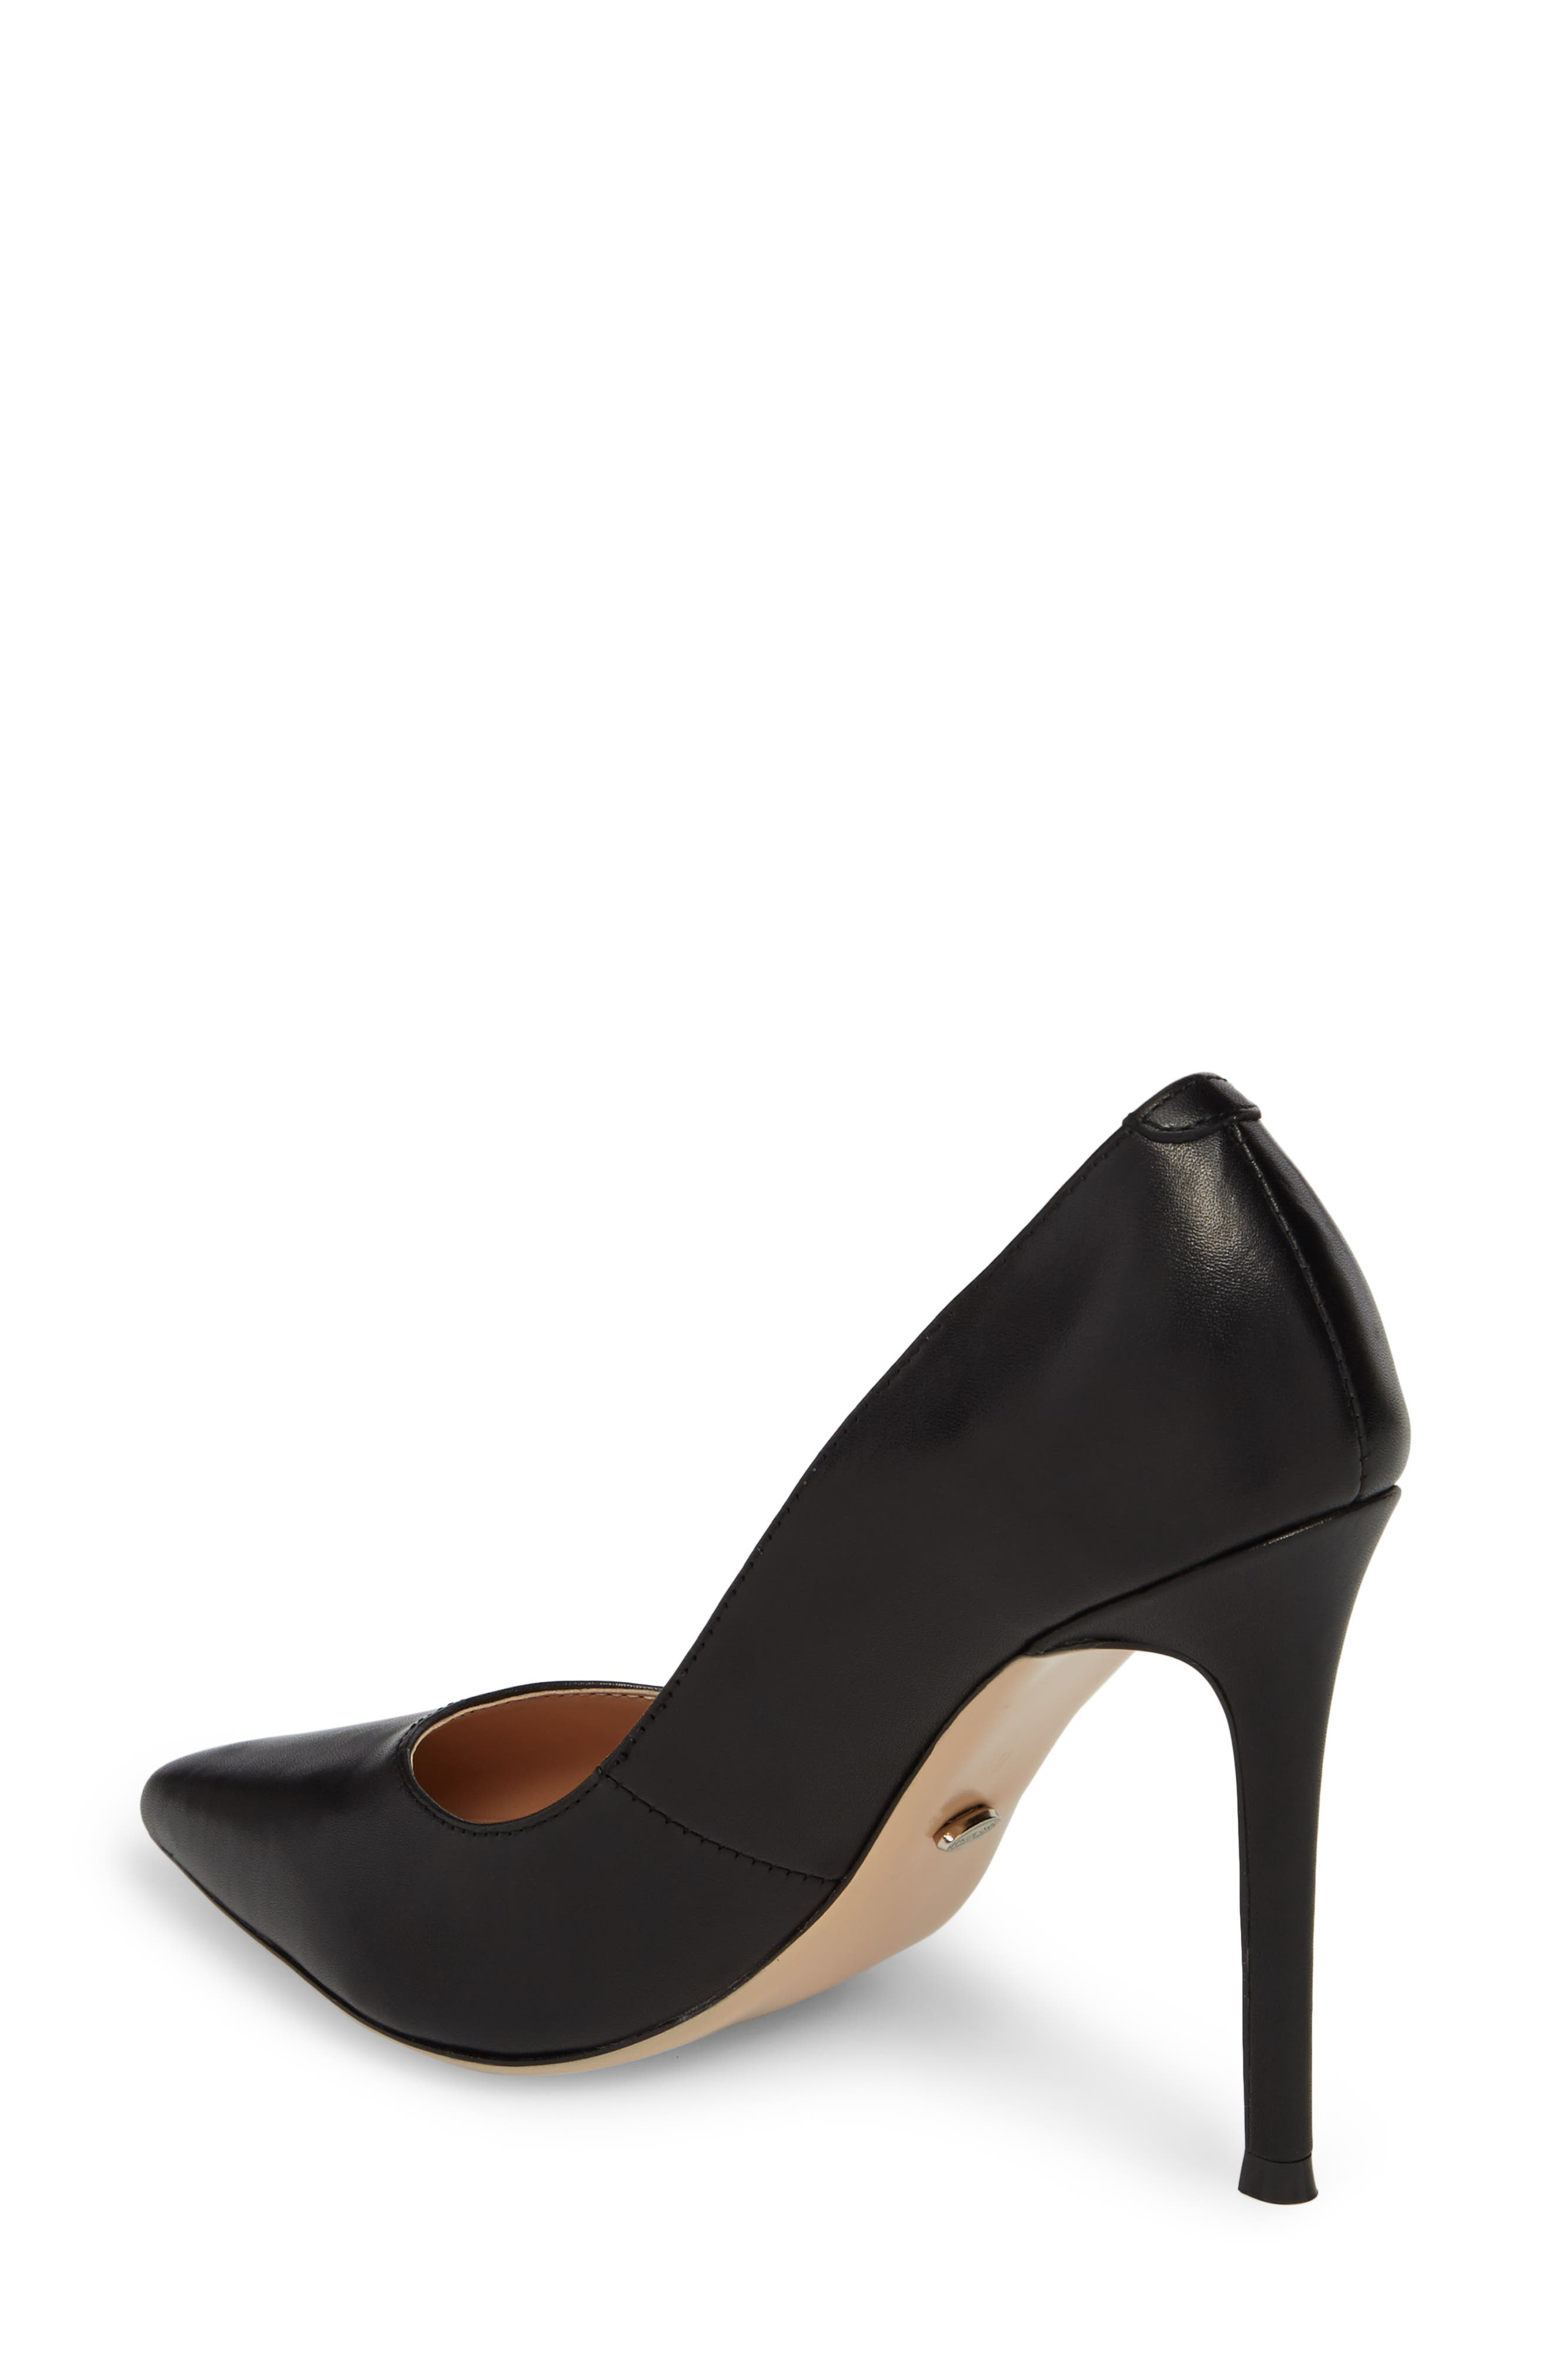 TONY BIANCO, Lotus Pointy Toe Pump, Alternate thumbnail 2, color, 001